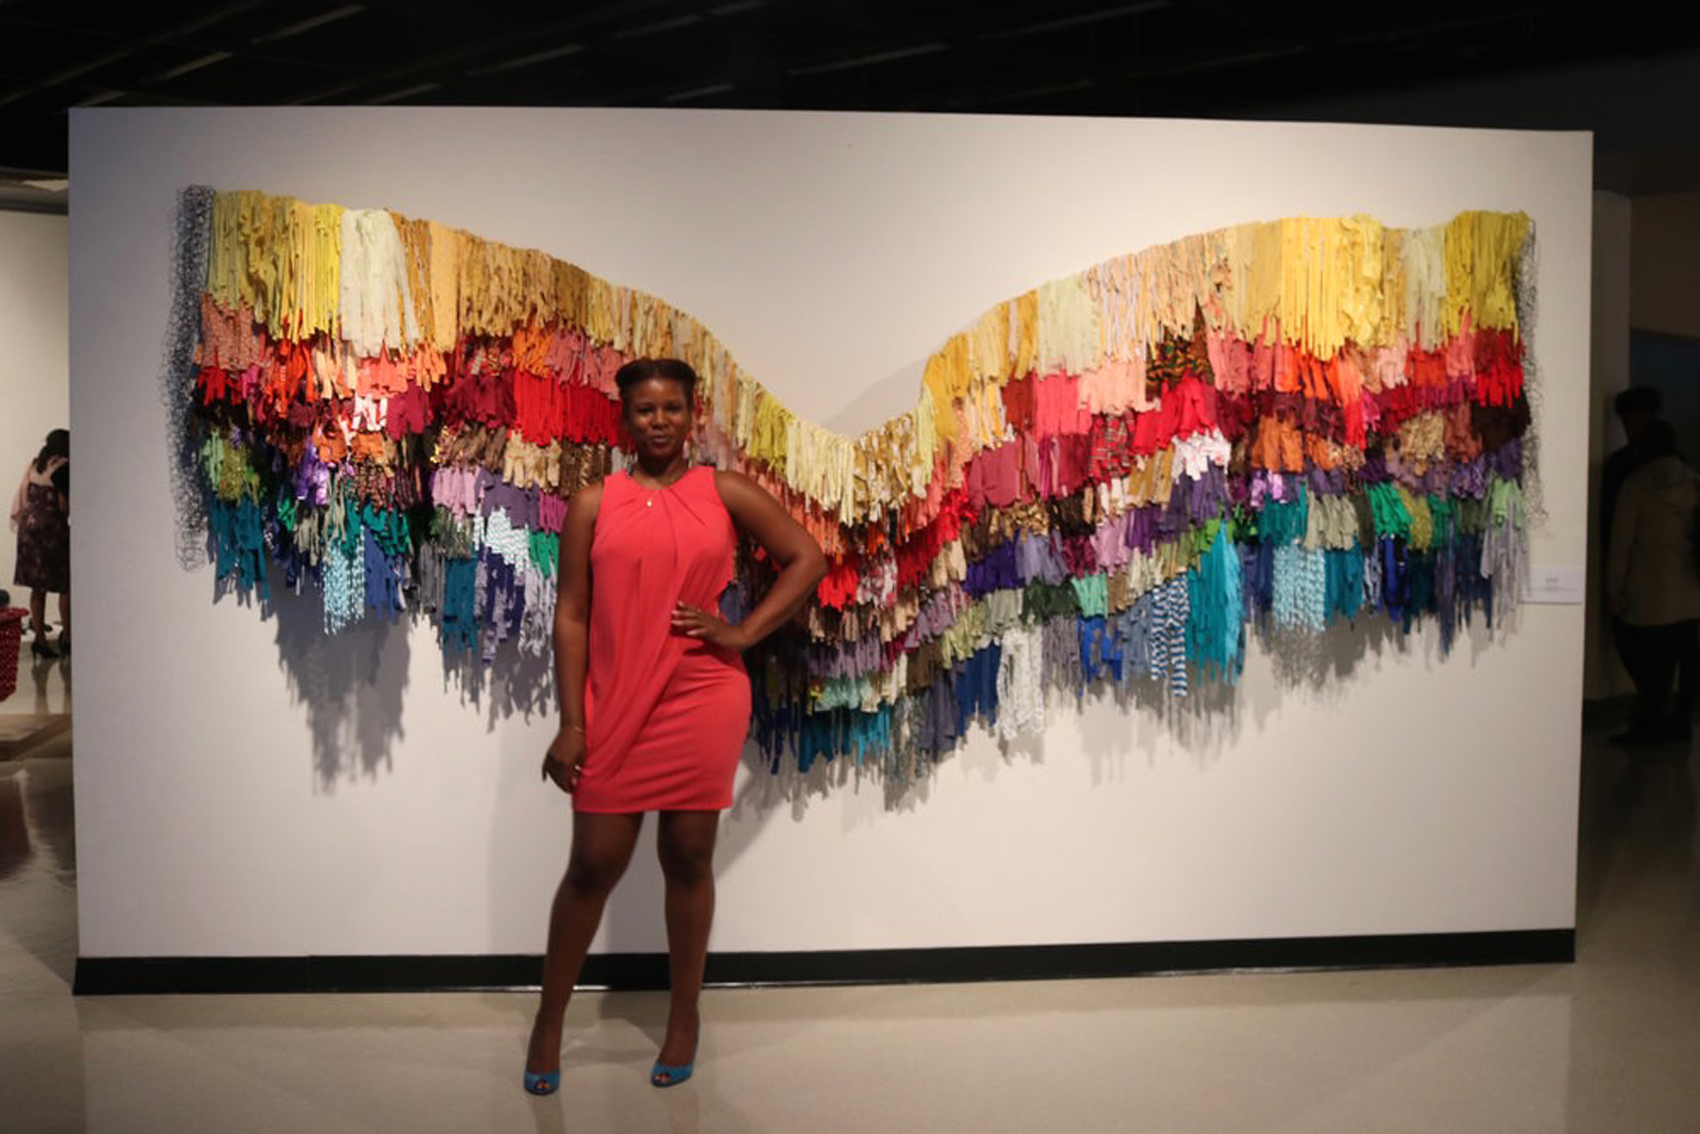 """Amber Robles-Gordon will feature her exhibition """"At the Altar: From the Fruit of My Love and Labor"""" in the DSU Arts Center/Gallery until Nov. 12. A reception for the artist will be held from 5-6:30 p.m. Thursday, Oct. 12 at the same location"""